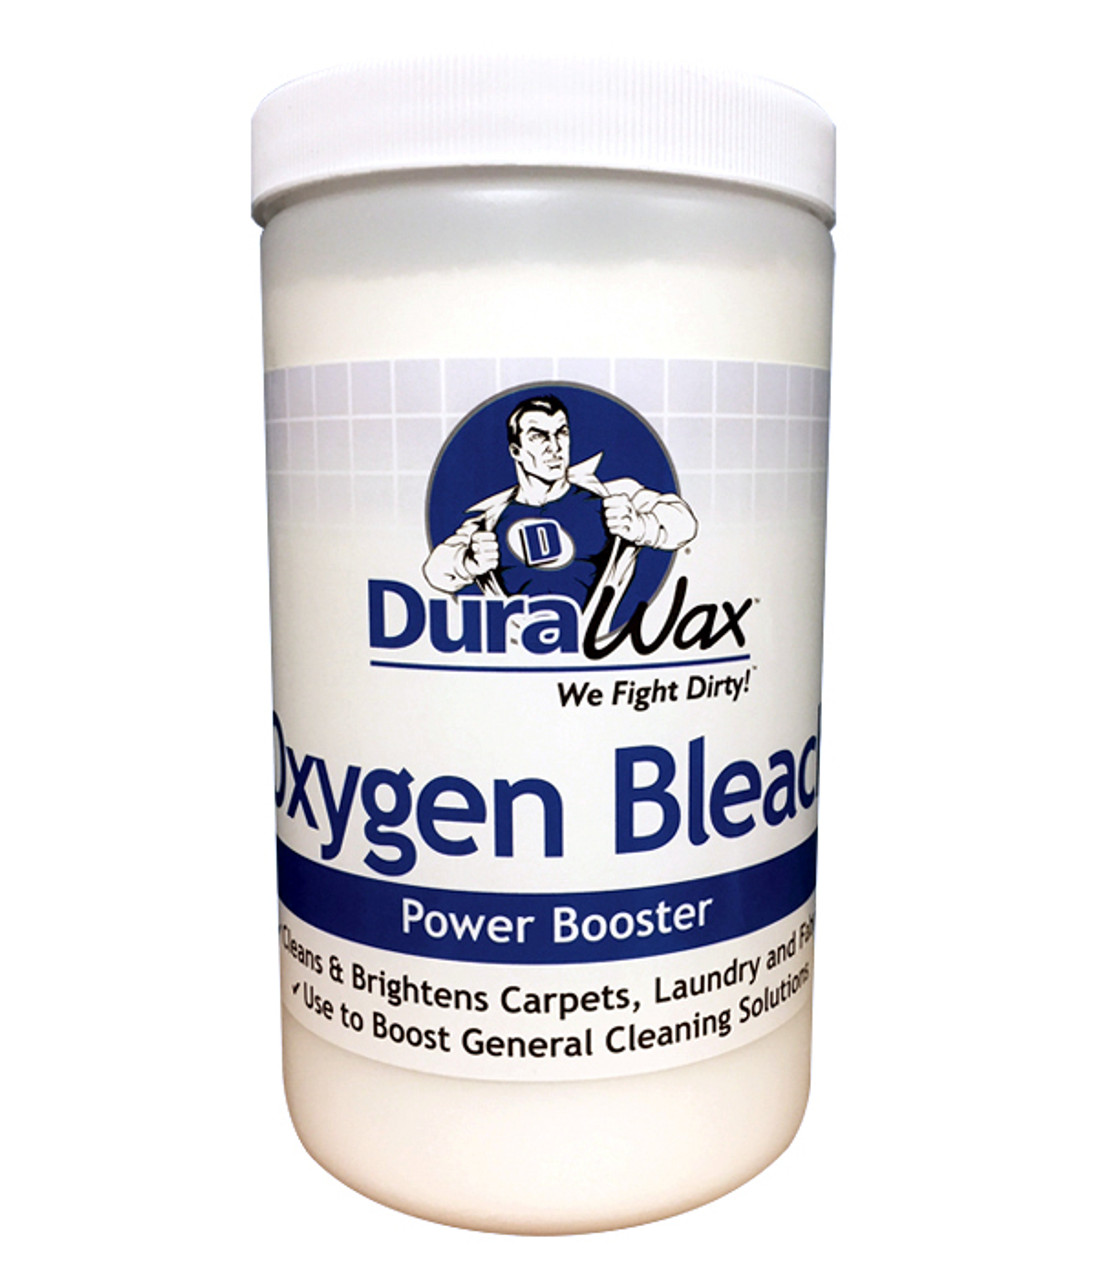 Meet The Man Who Apparently Brought Toxic Bleach Product >> Oxygen Bleach Oxygen Stain Remover The Dura Wax Company